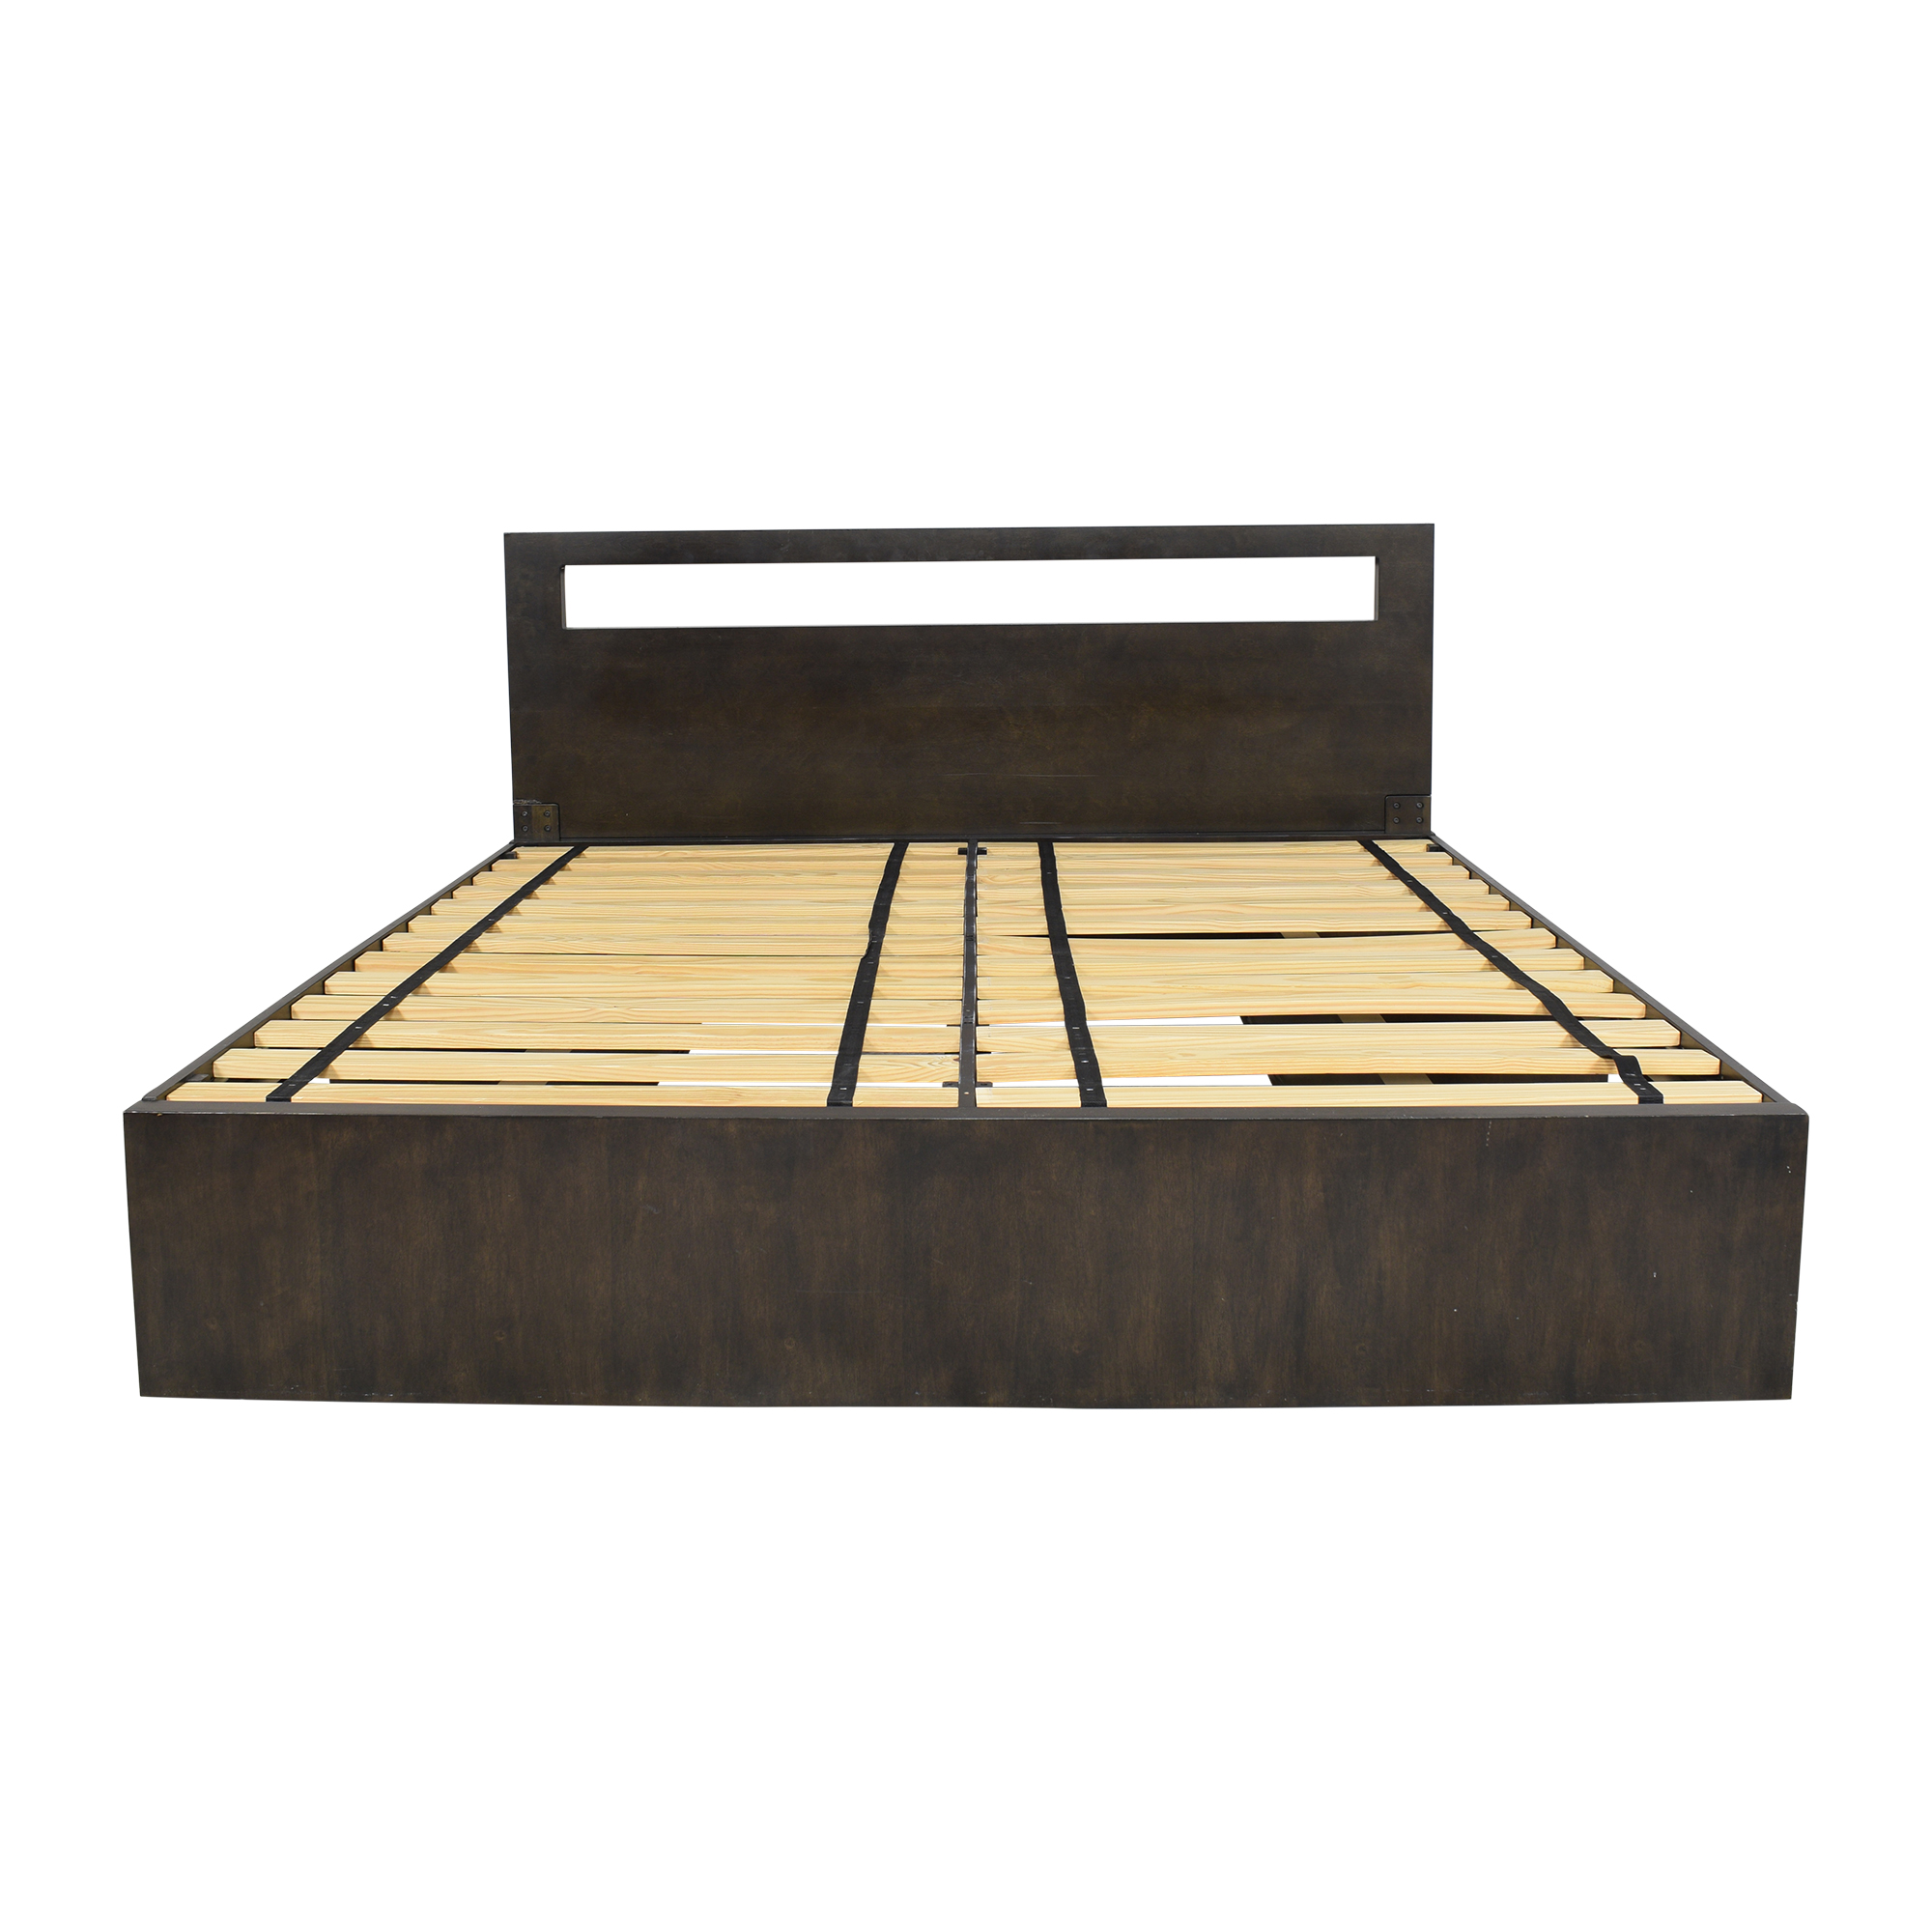 West Elm West Elm Sylvan Storage King Bed second hand